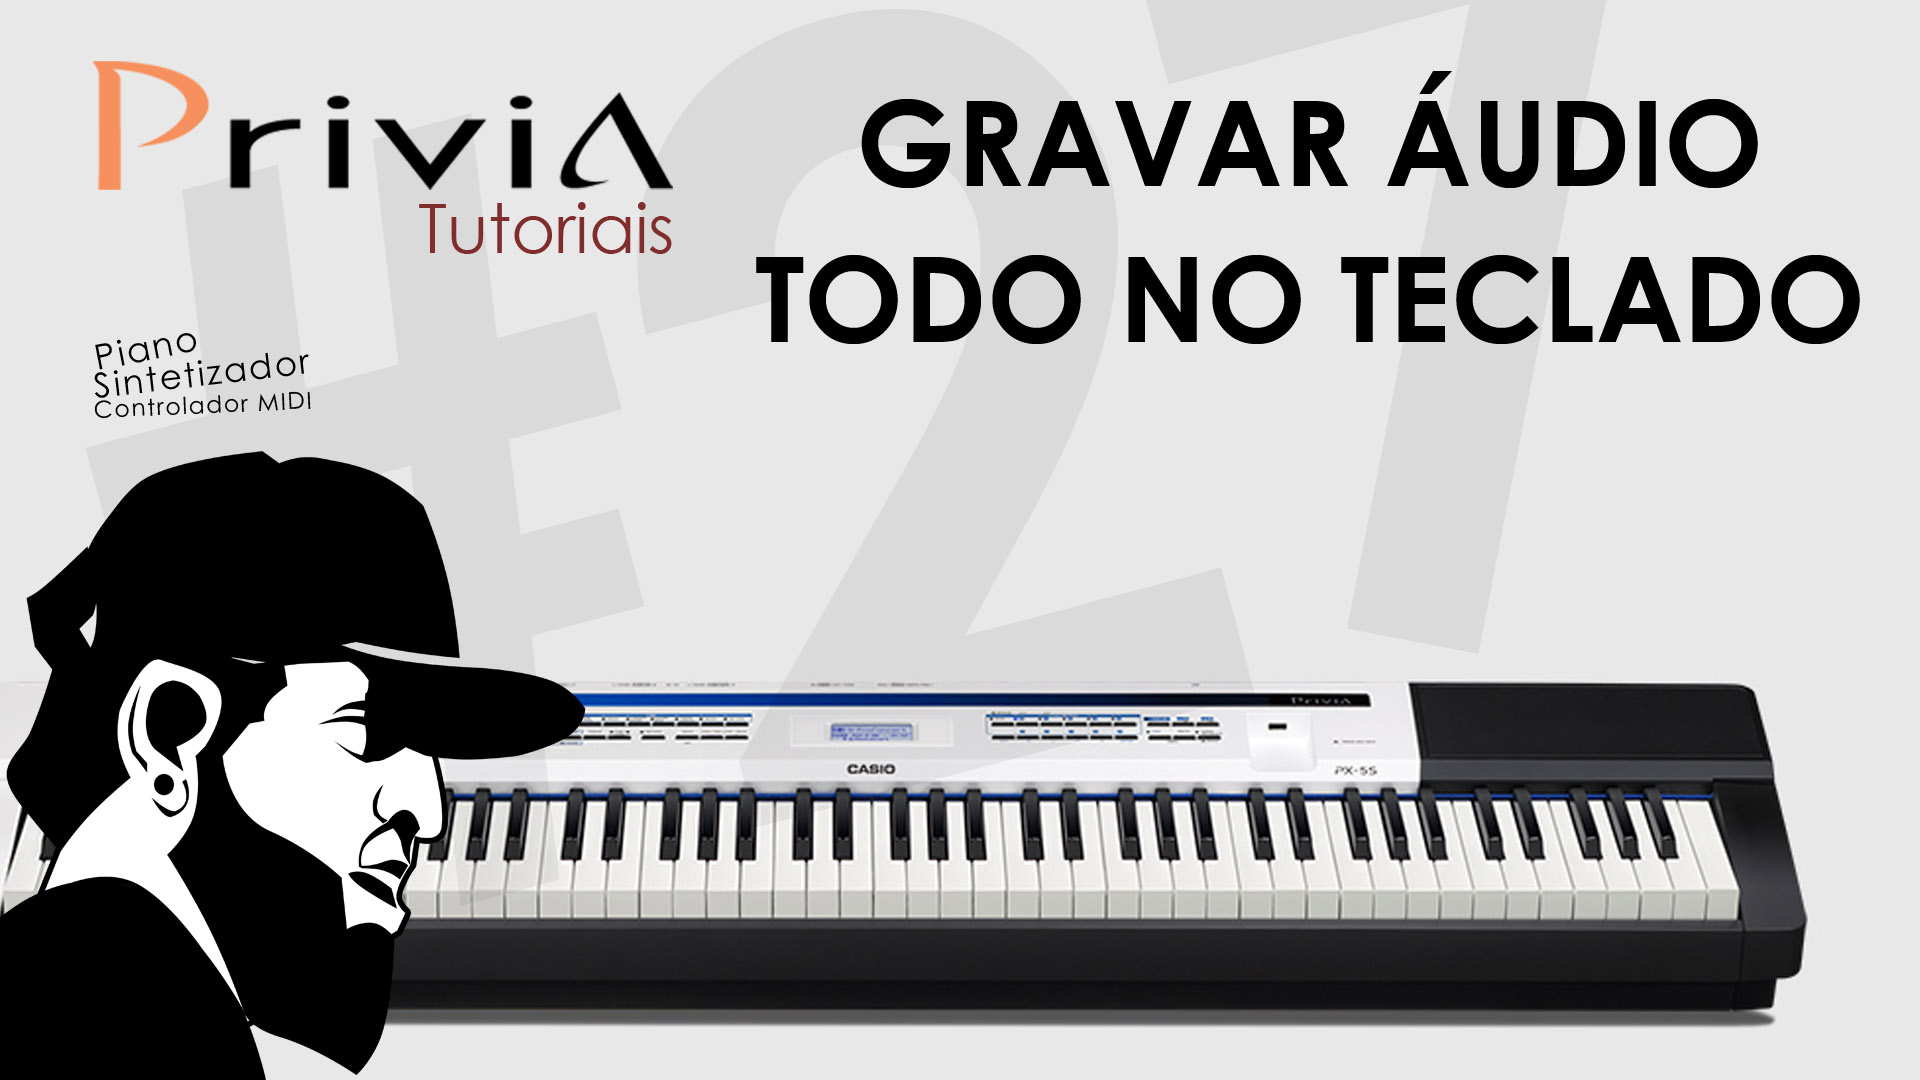 Como Gravar Audio No Pendrive | Tutorial Casio Privia PX-5S